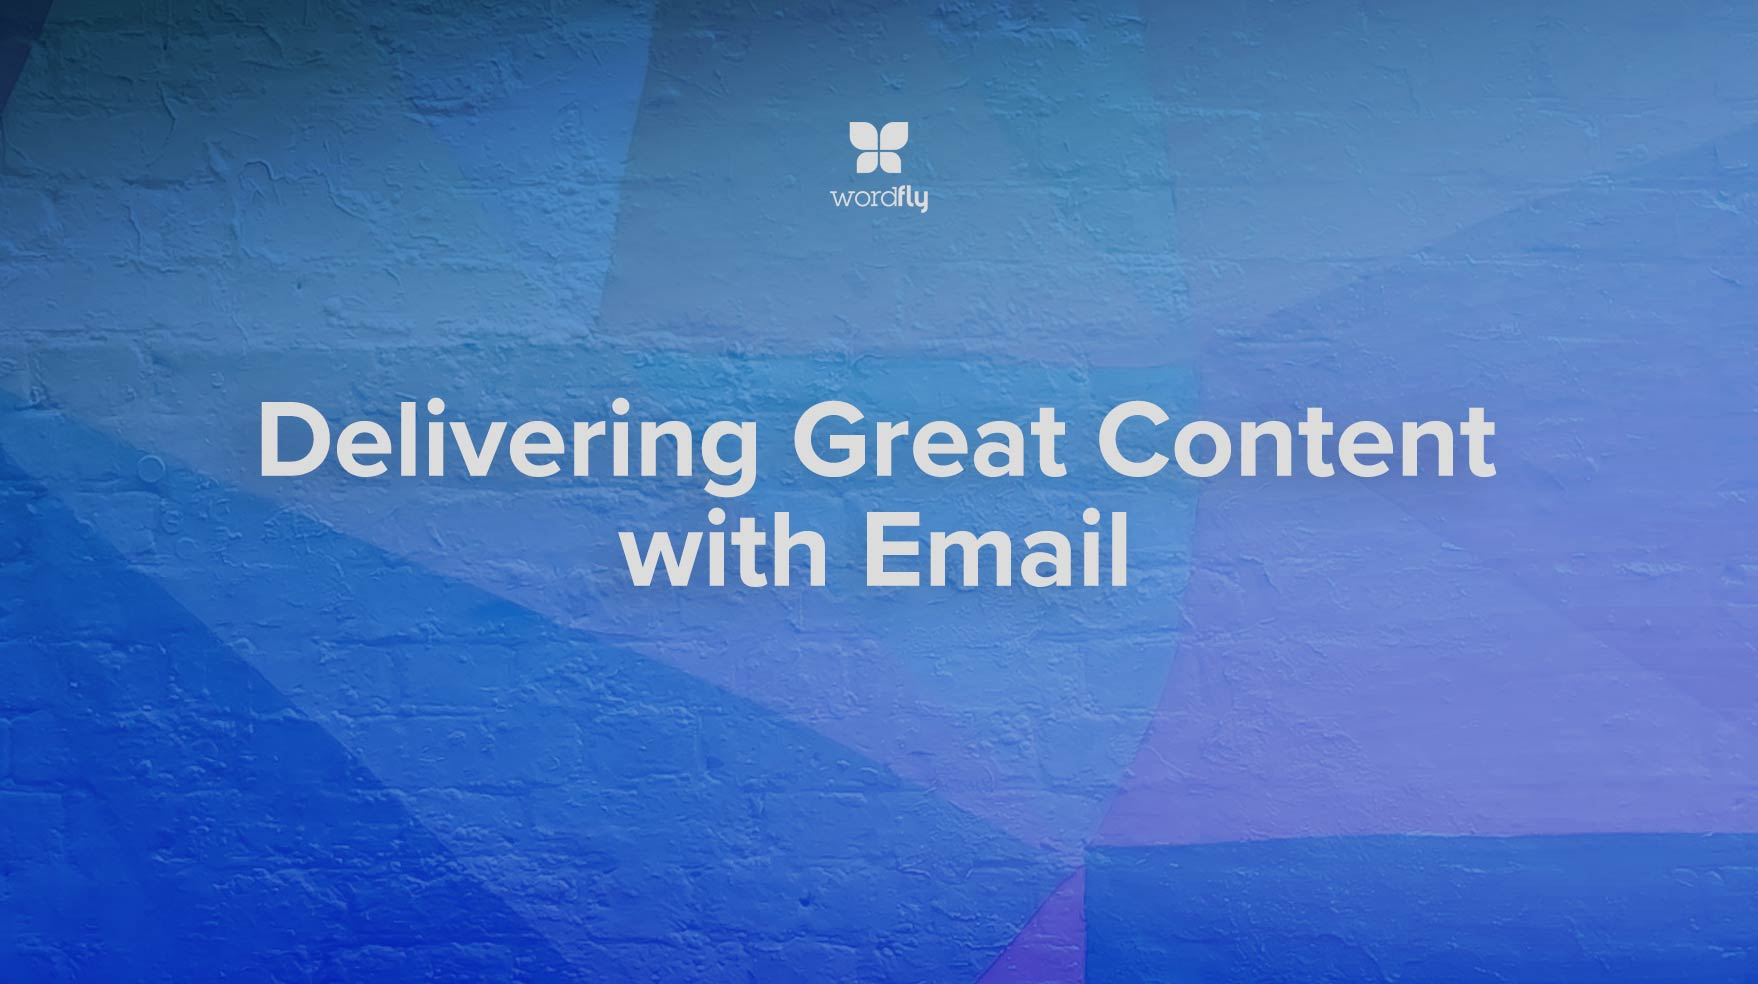 Delivering Great Content with Email